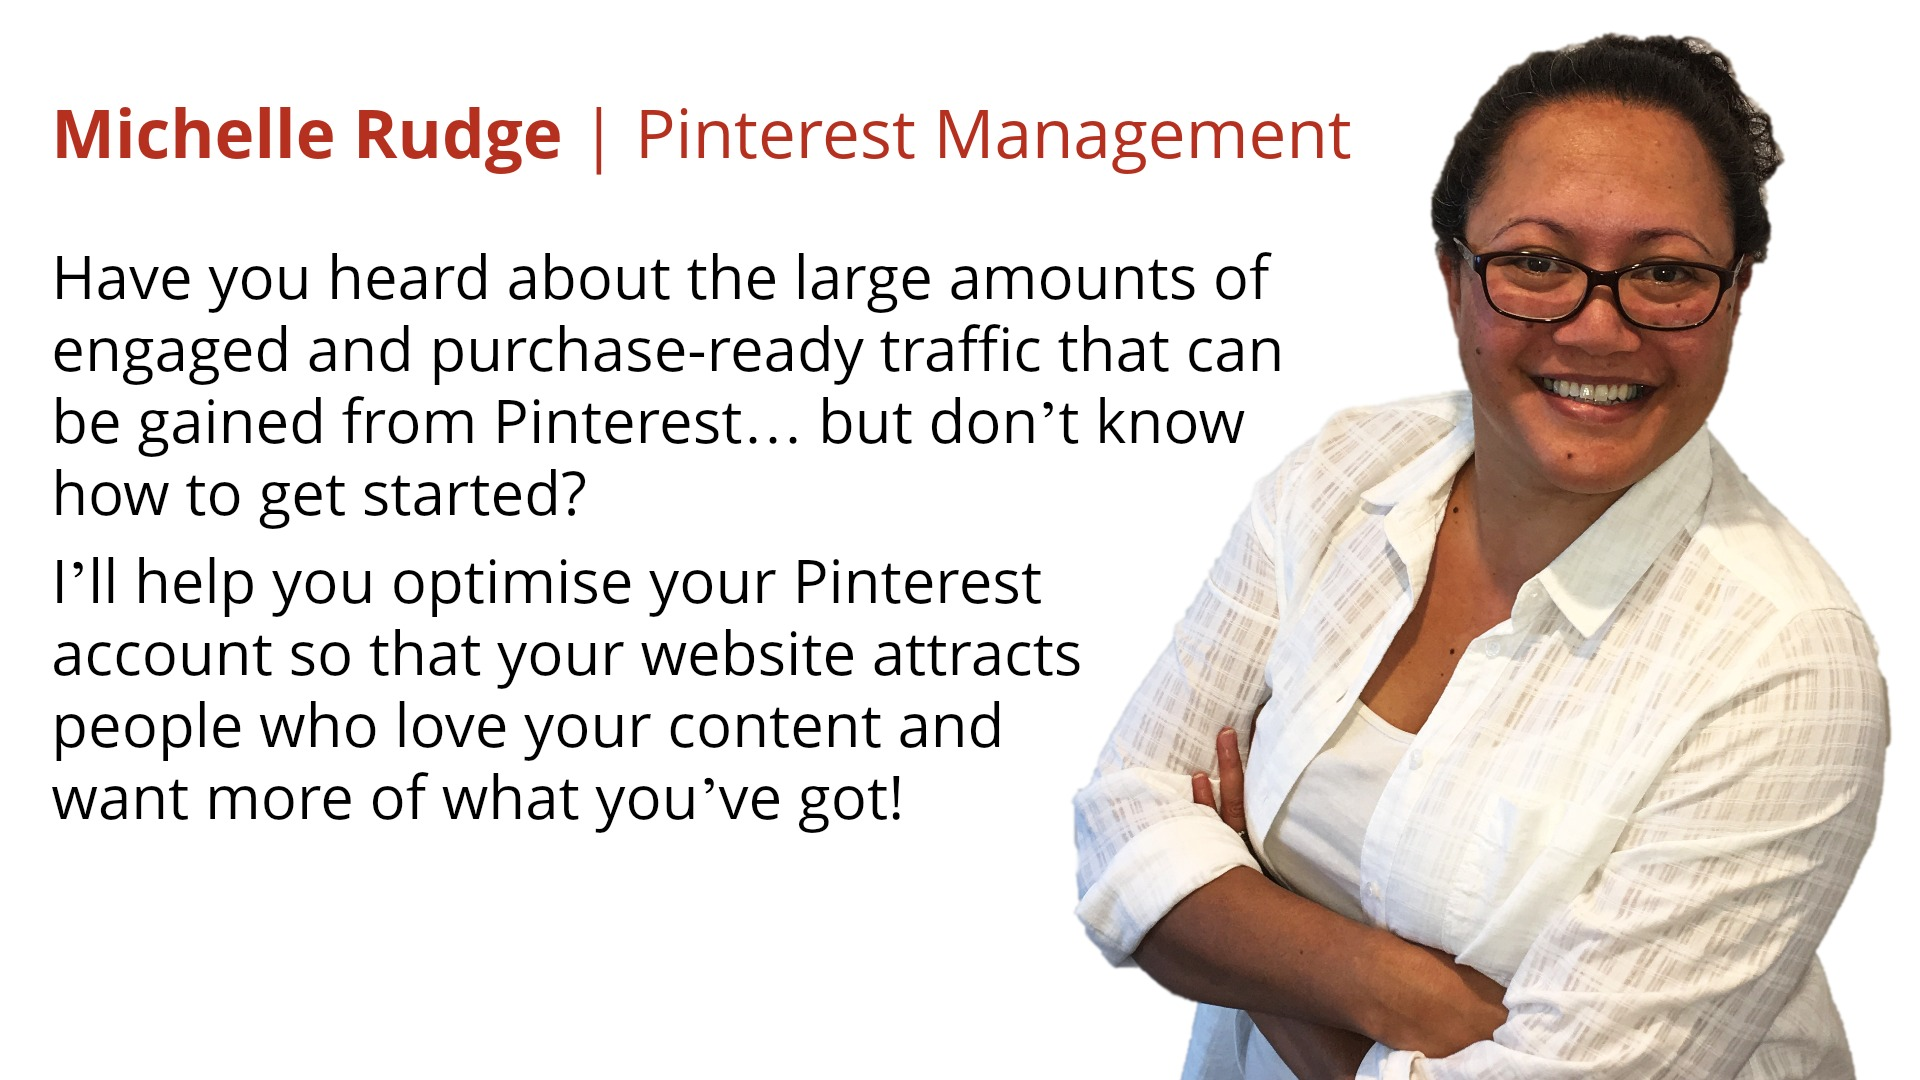 Michelle Rudge | Pinterest Management Services